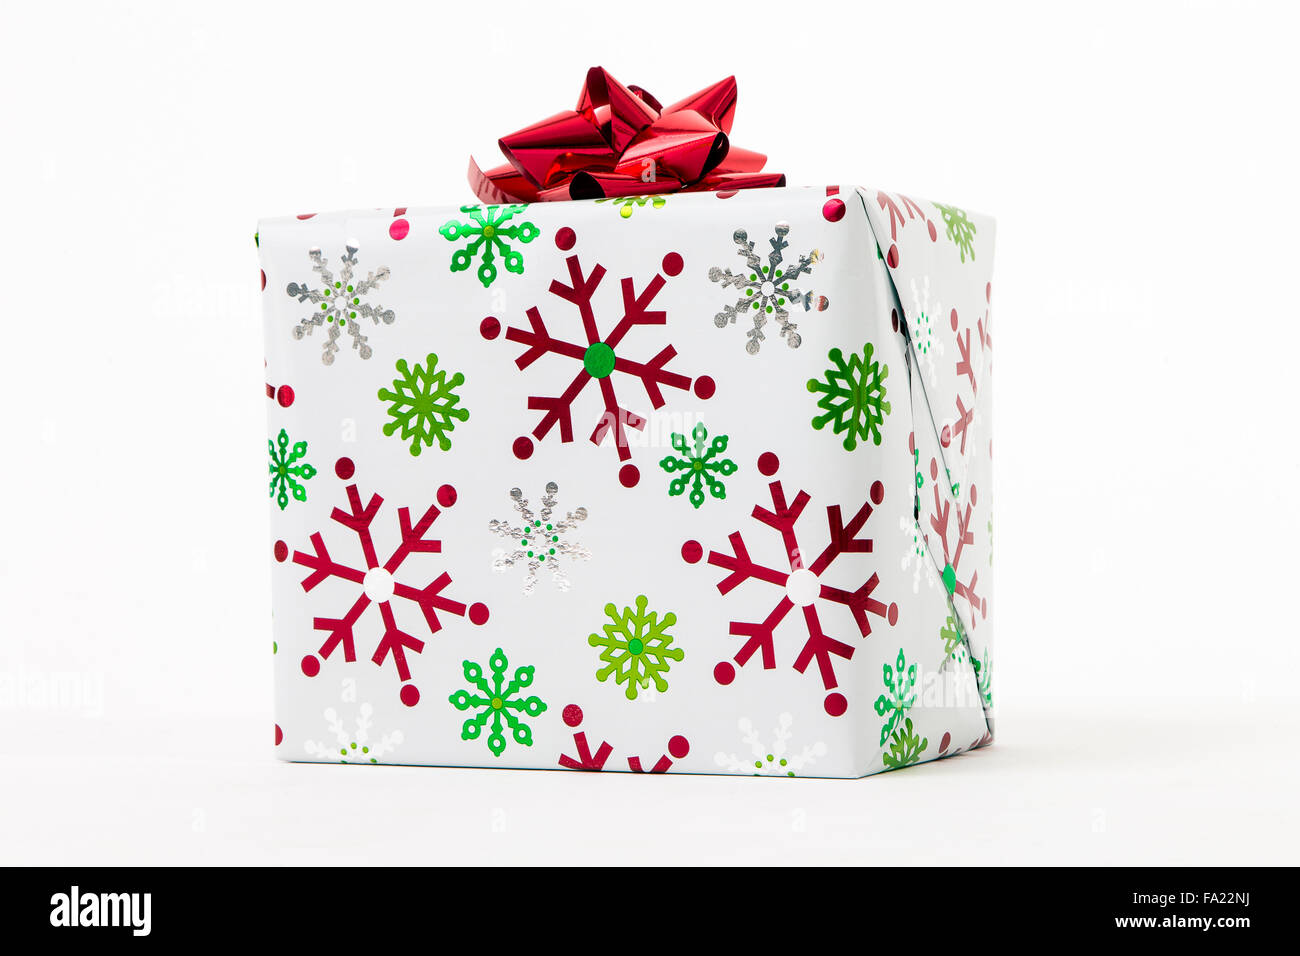 Christmas gift, wrapped in paper featuring snowflakes - Stock Image